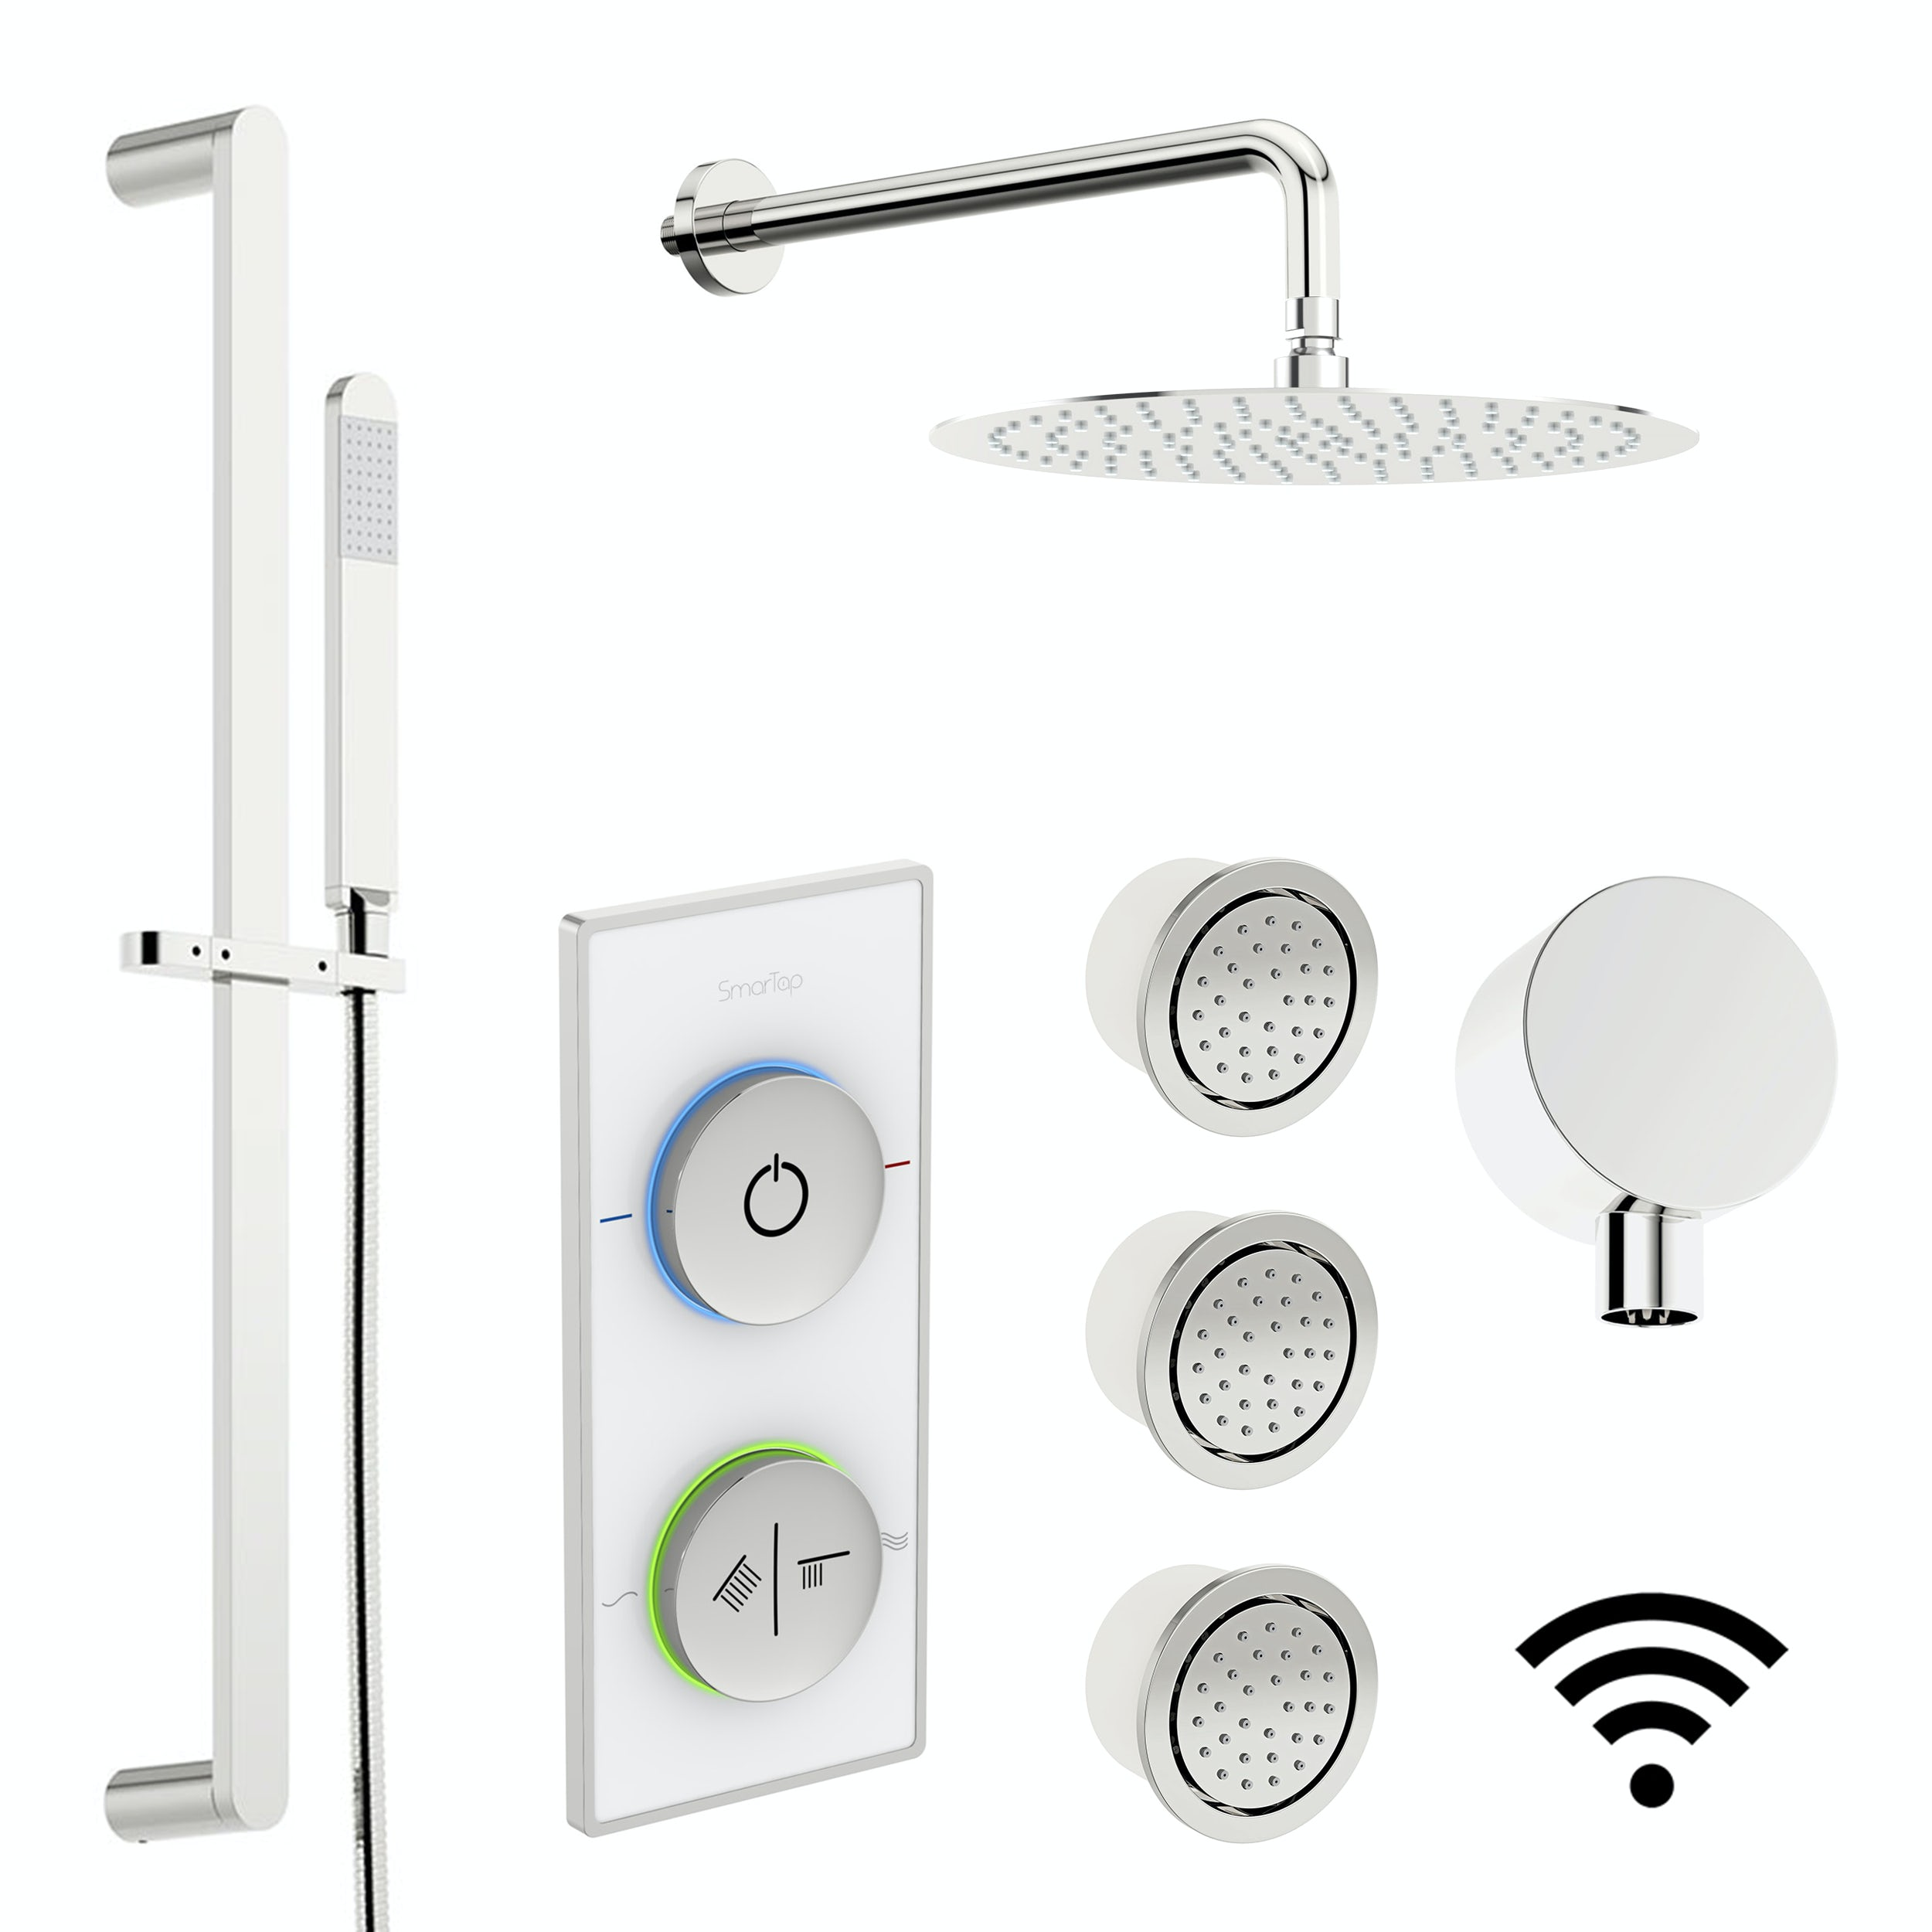 SmarTap white smart shower system with complete round wall shower ...